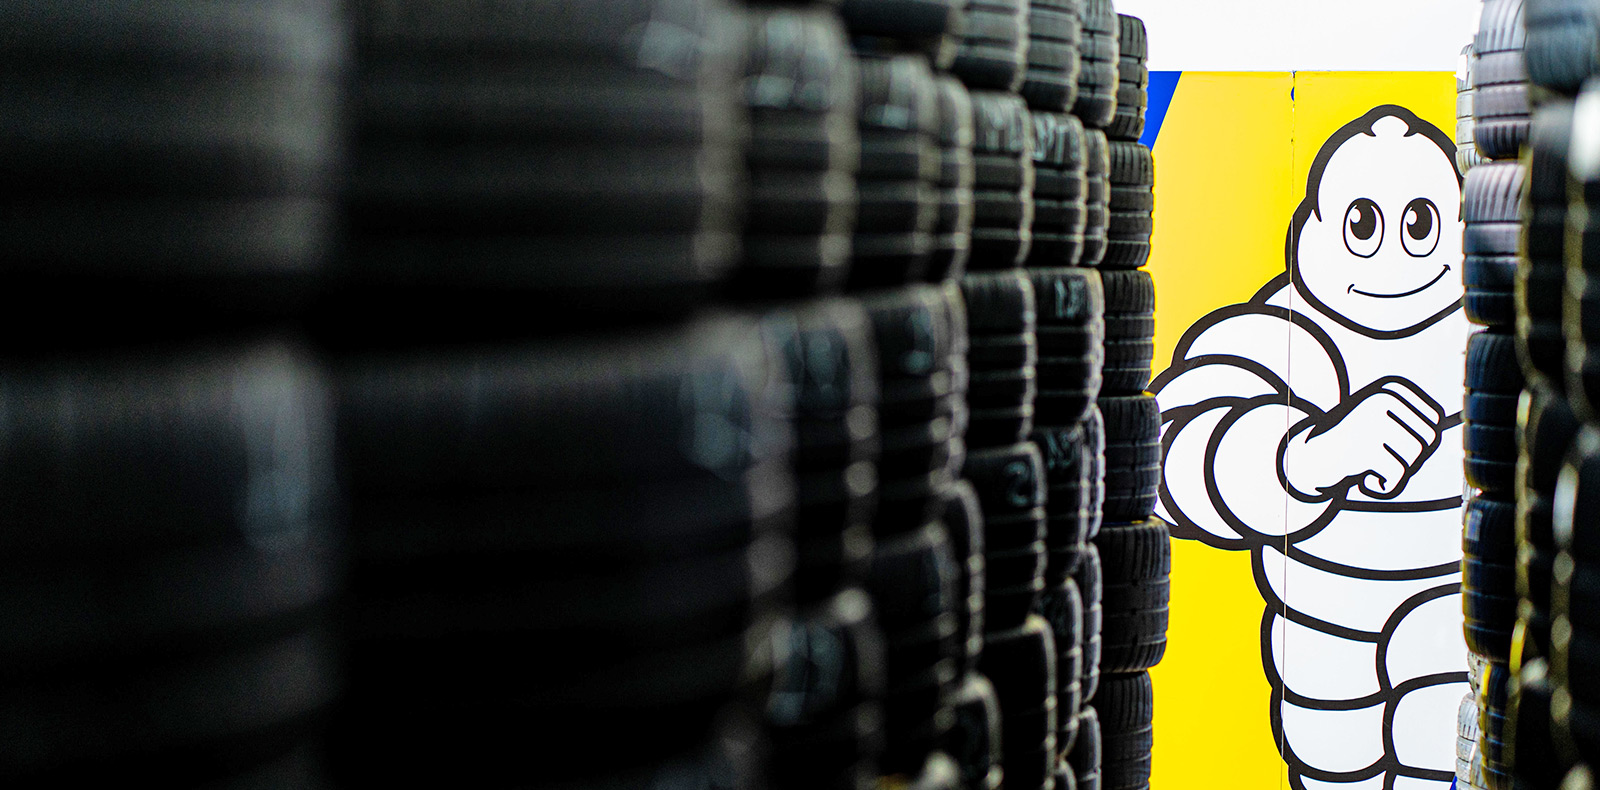 Why invest in Michelin?